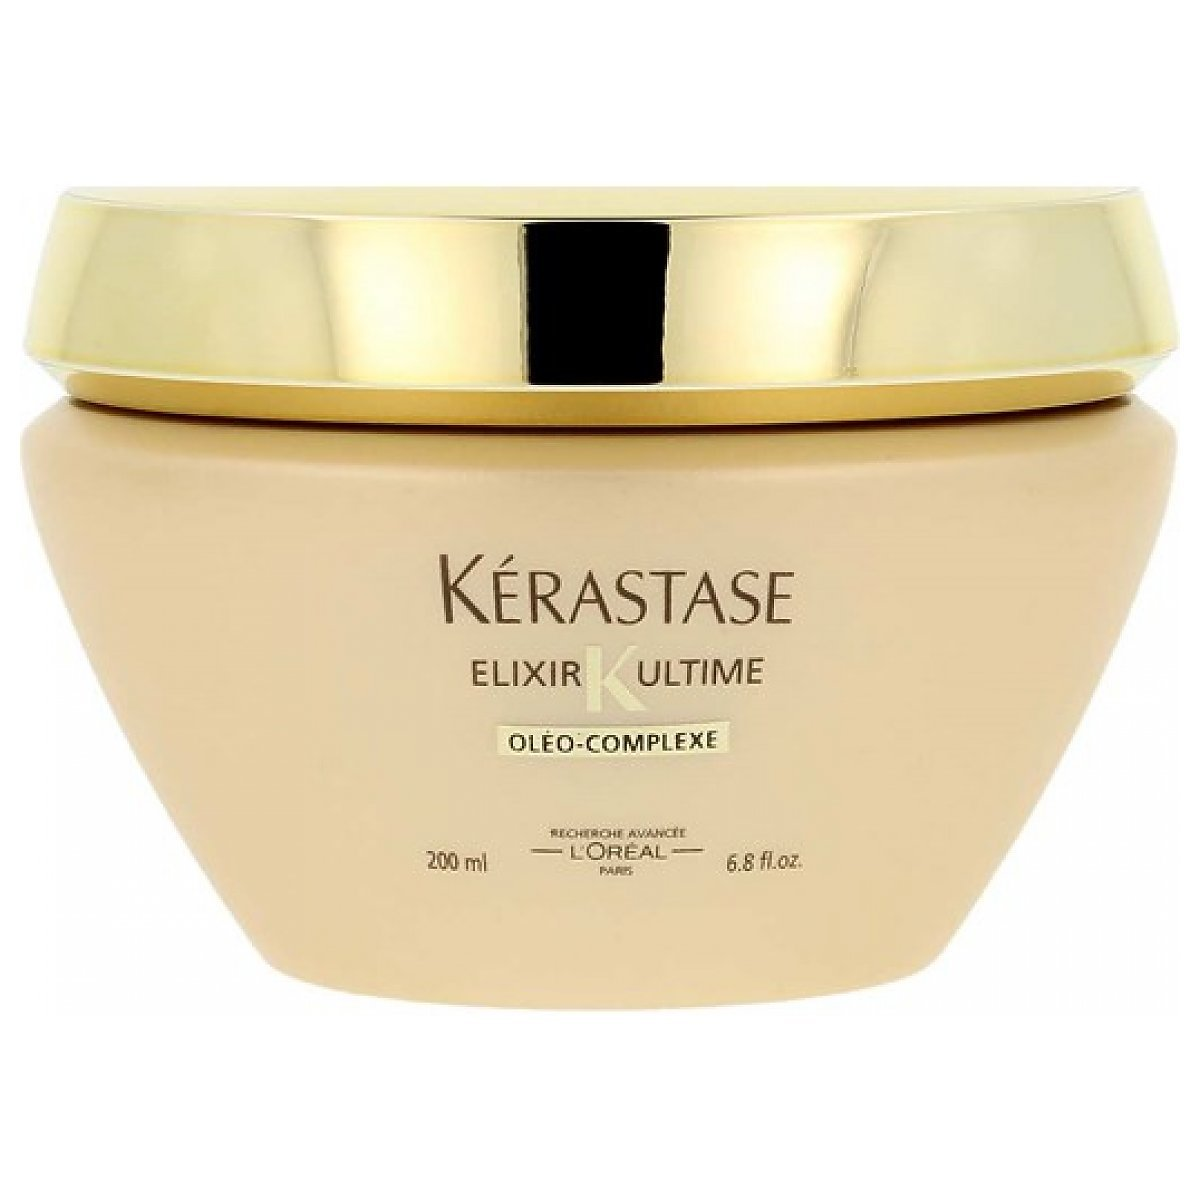 kerastase elixir ultime oleo complex masque maska do. Black Bedroom Furniture Sets. Home Design Ideas